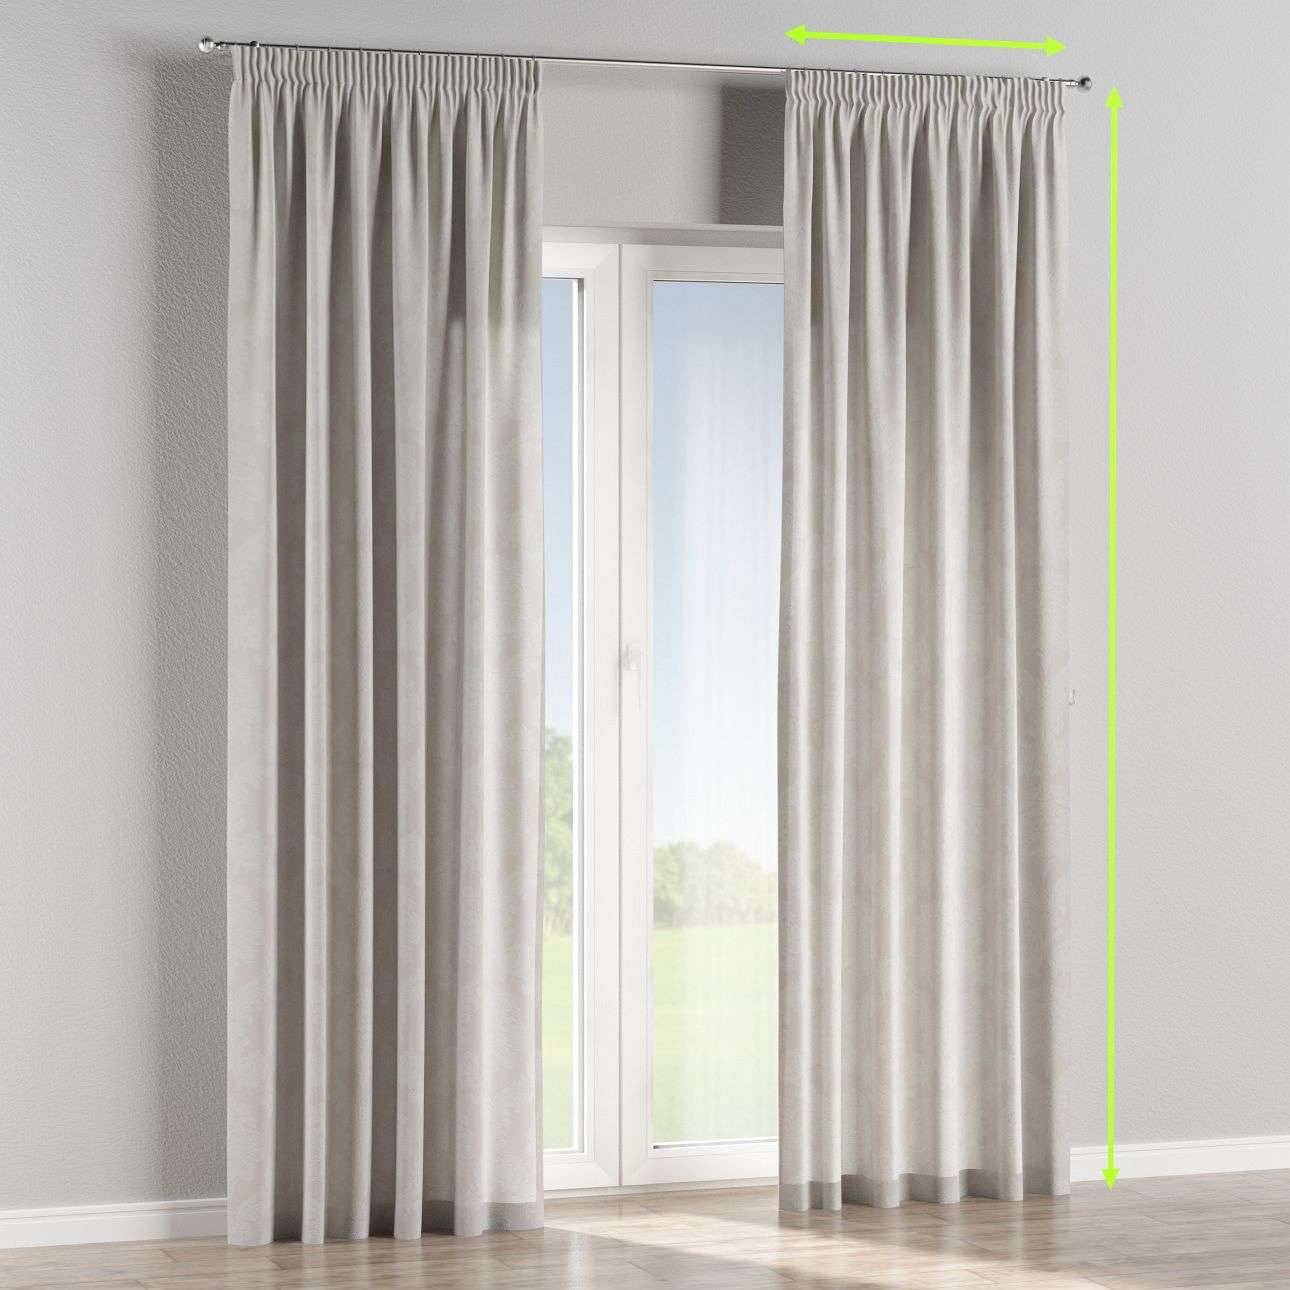 Pencil pleat curtain in collection Damasco, fabric: 613-81